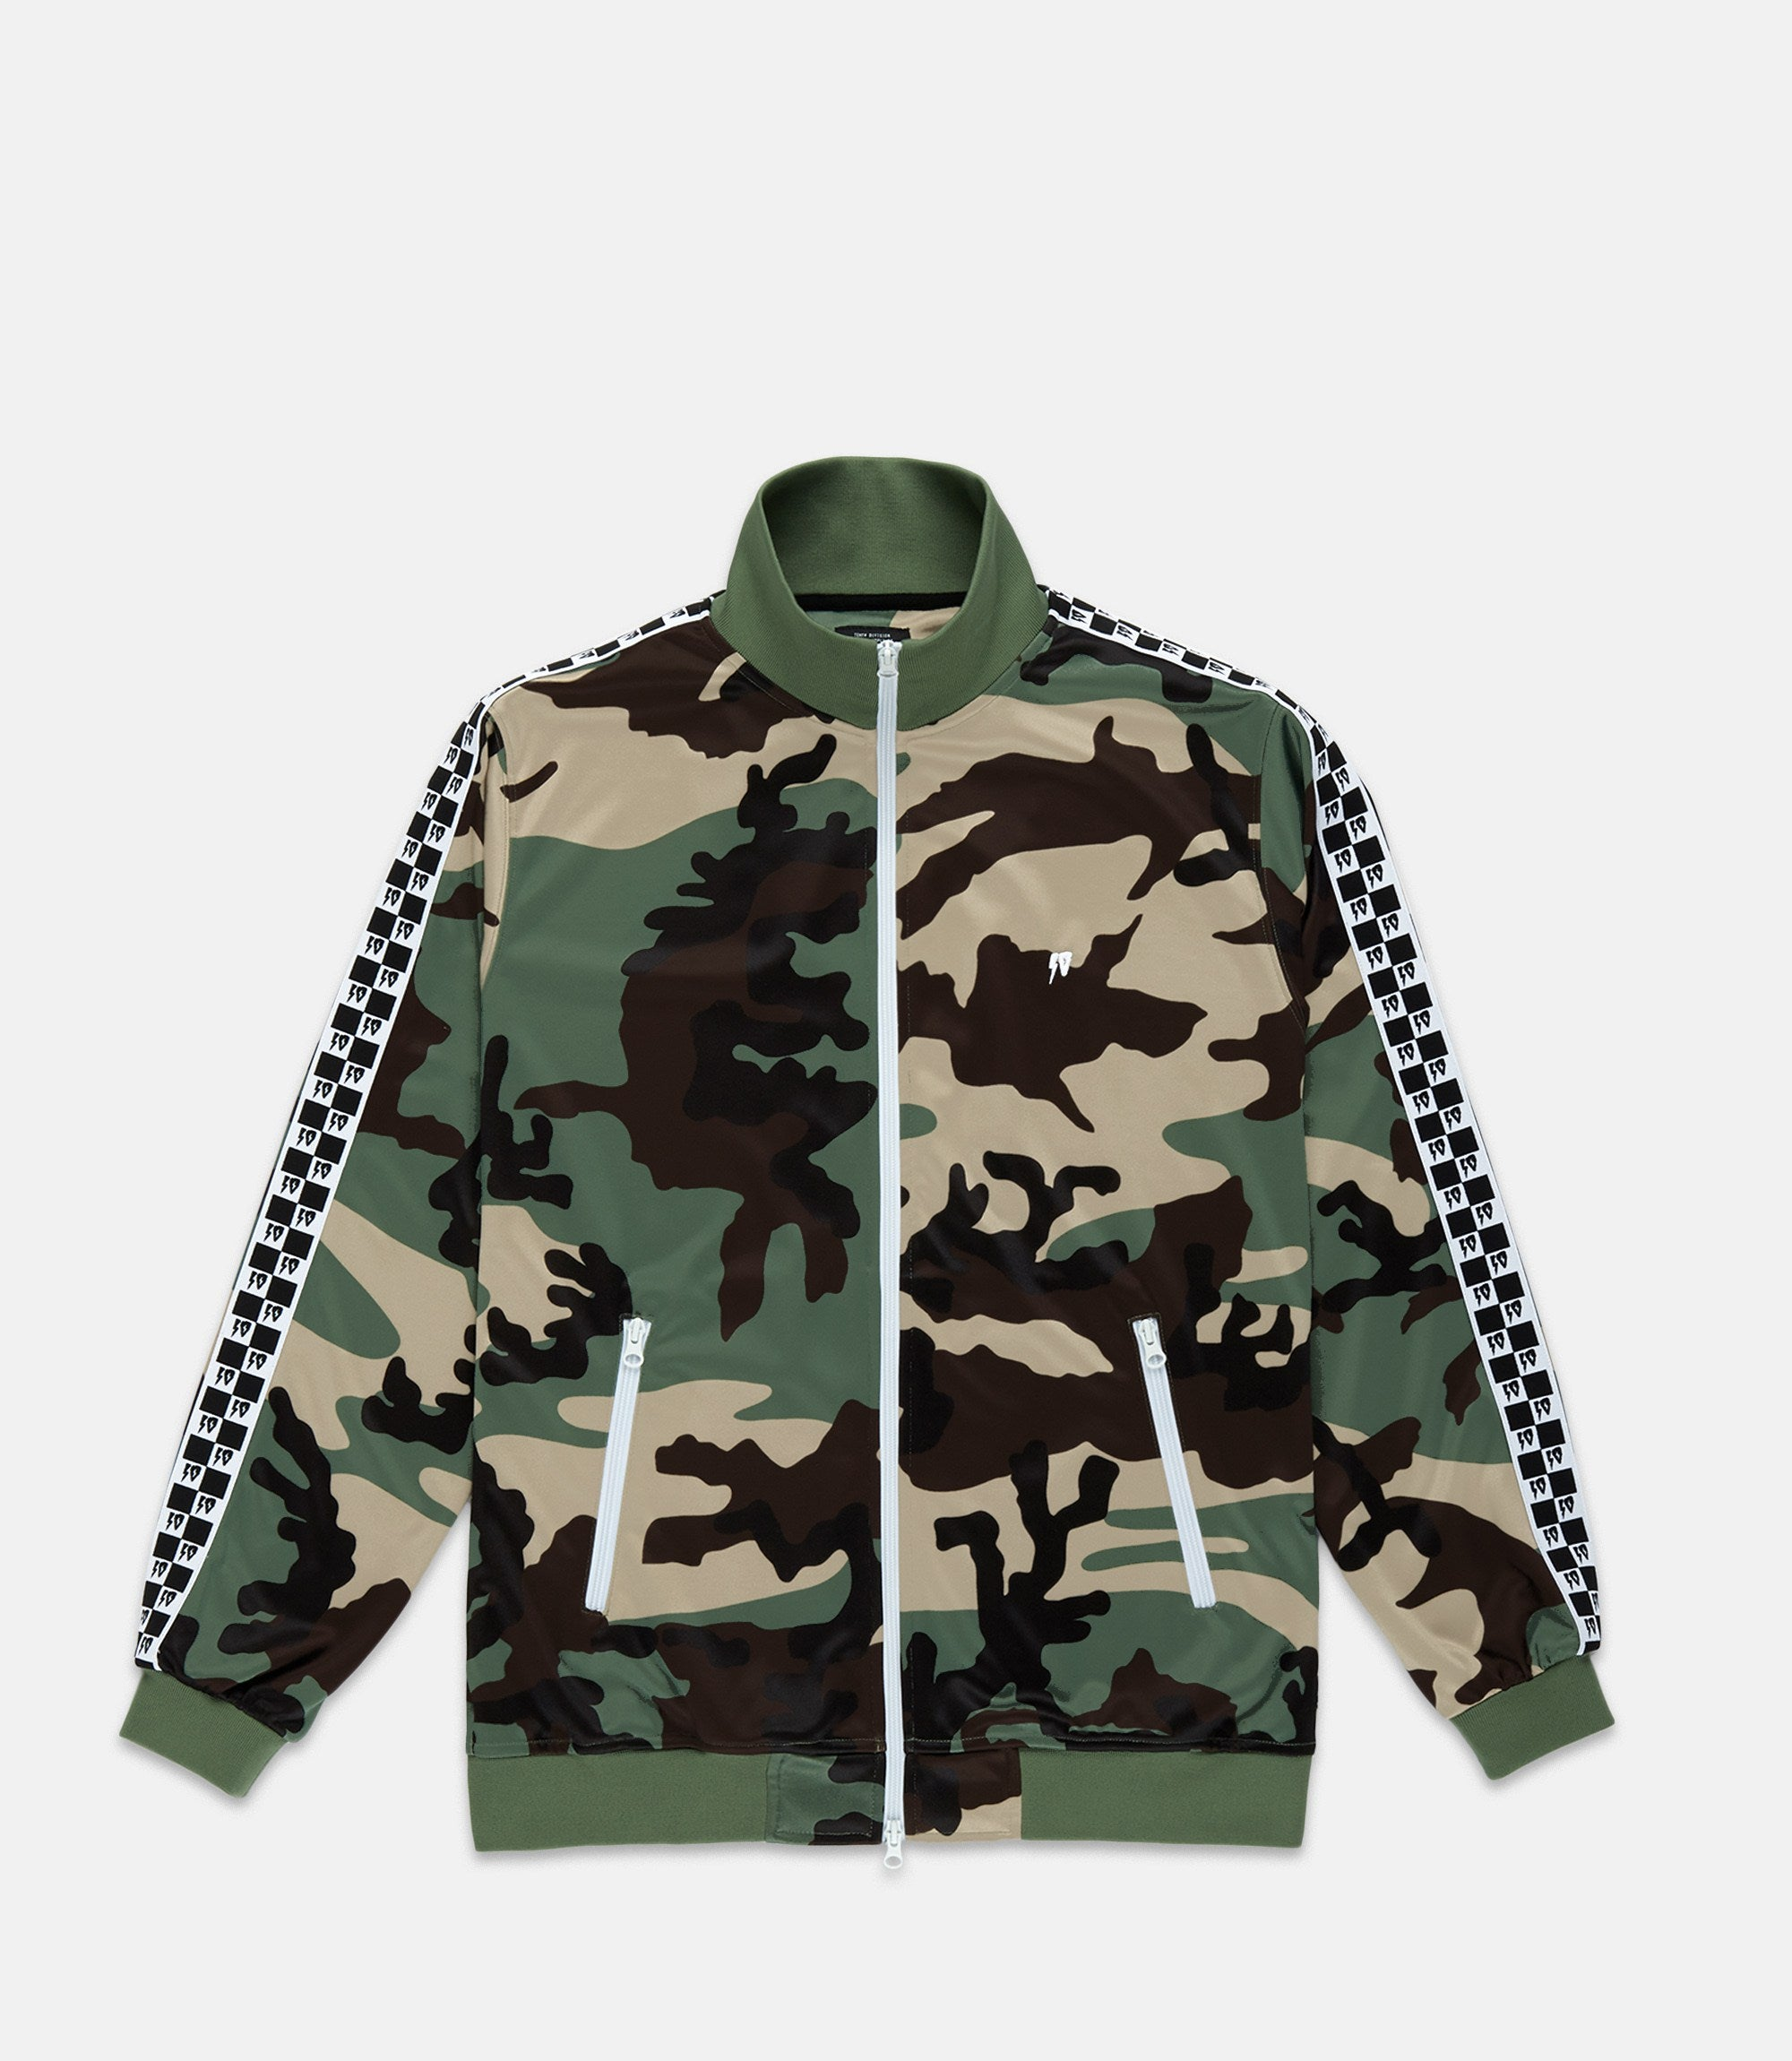 10 Deep Checkered Flag Track Jacket - leaders1354